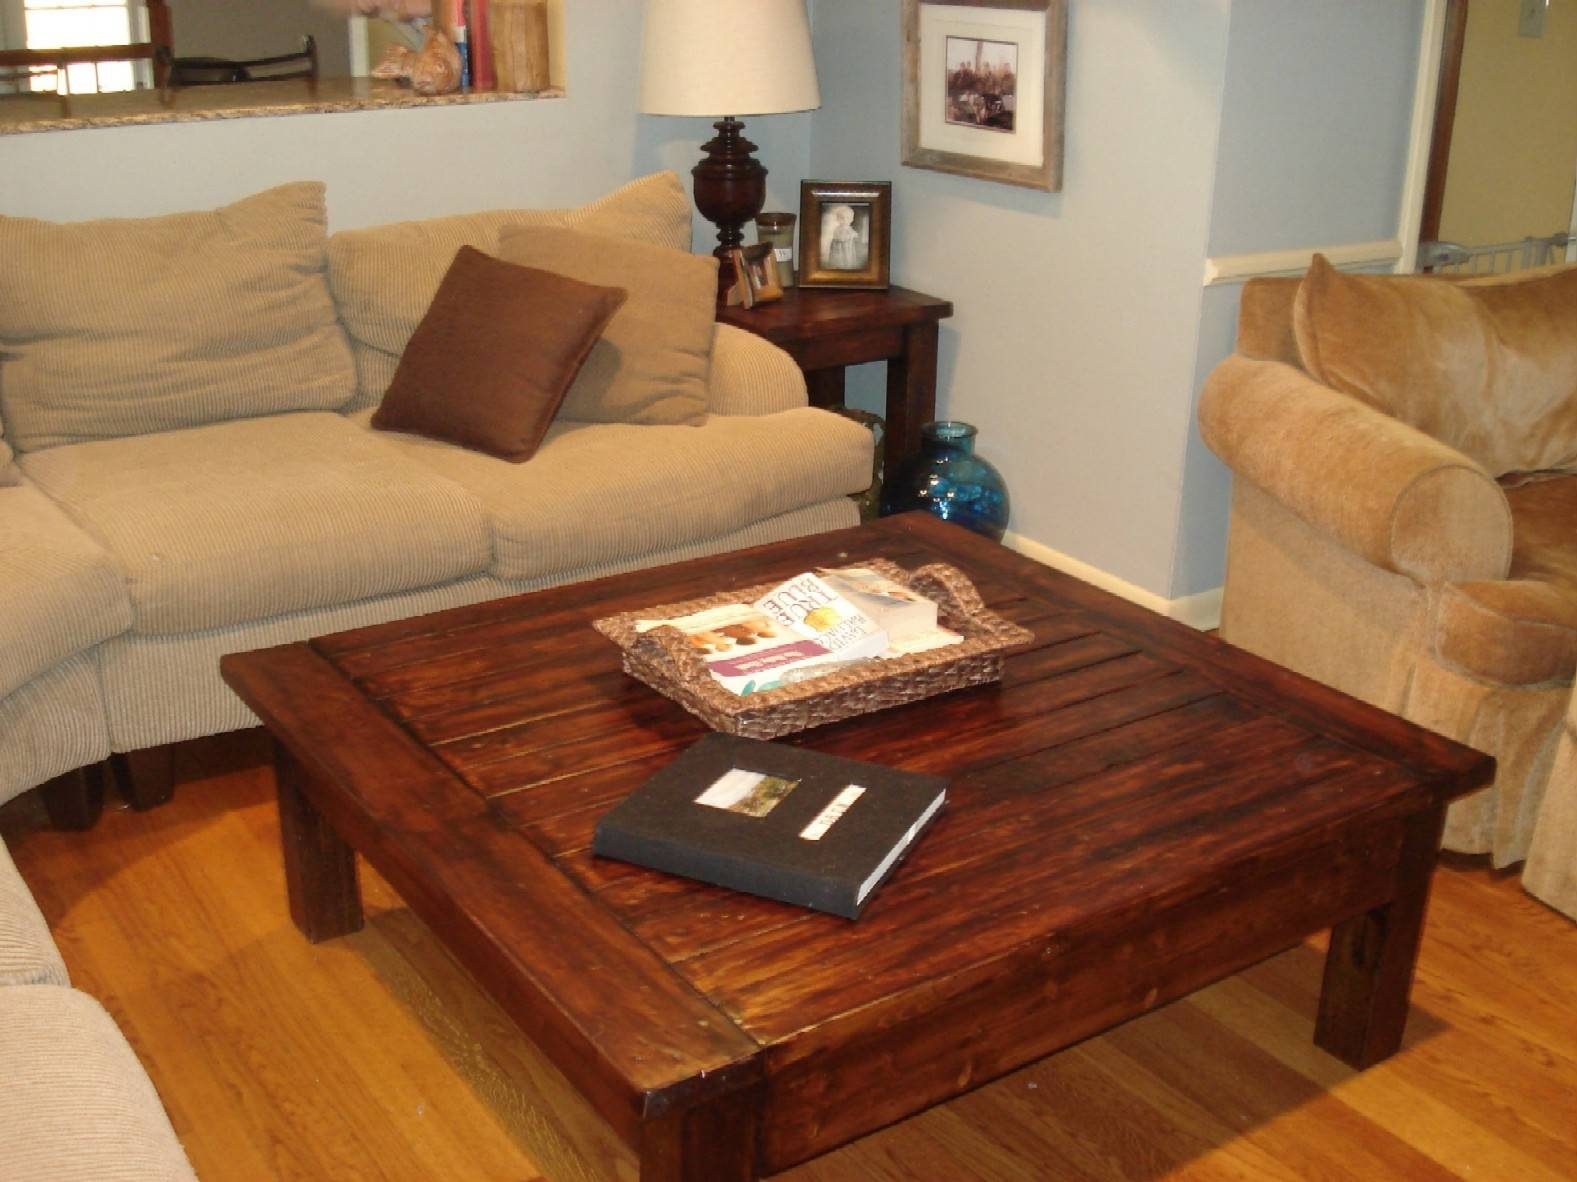 Incredible Large Coffee Table Dimensions – Amazon Sofa Tables with regard to Square Large Coffee Tables (Image 18 of 30)